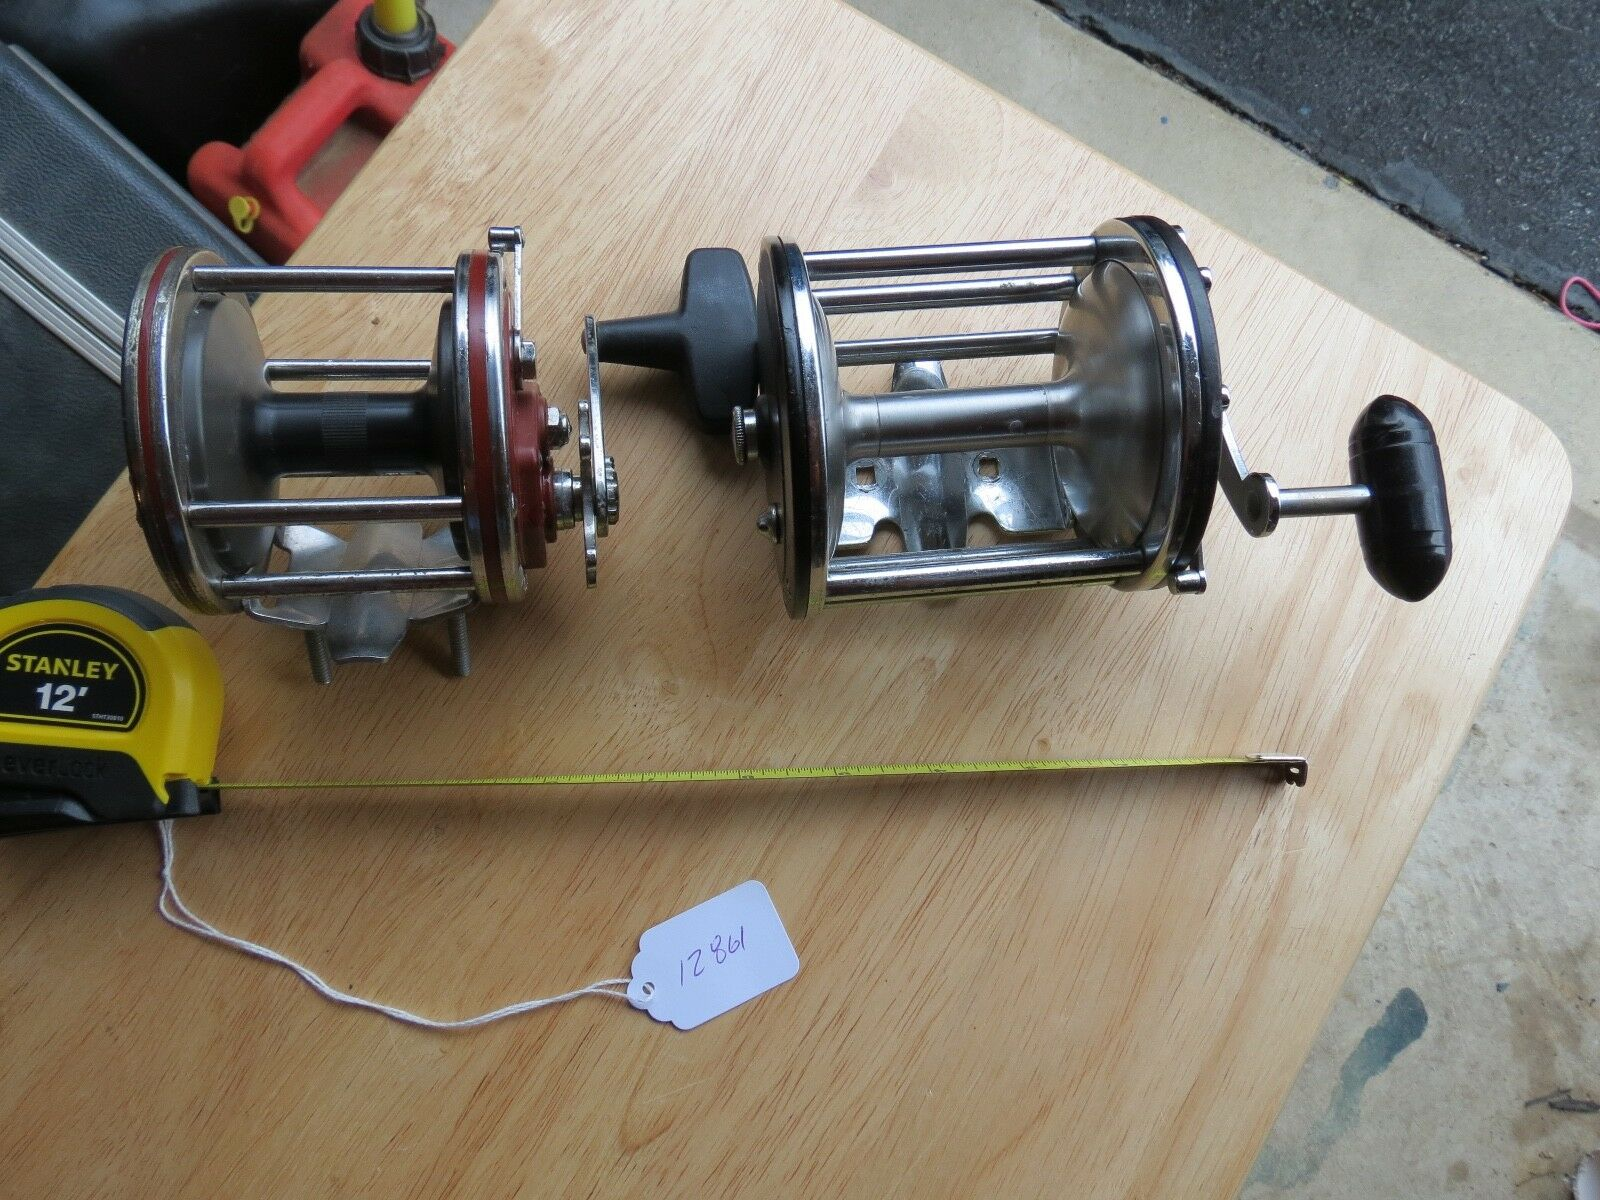 Penn Senator 30 fishing reel & Long Beach 68 lot 12861